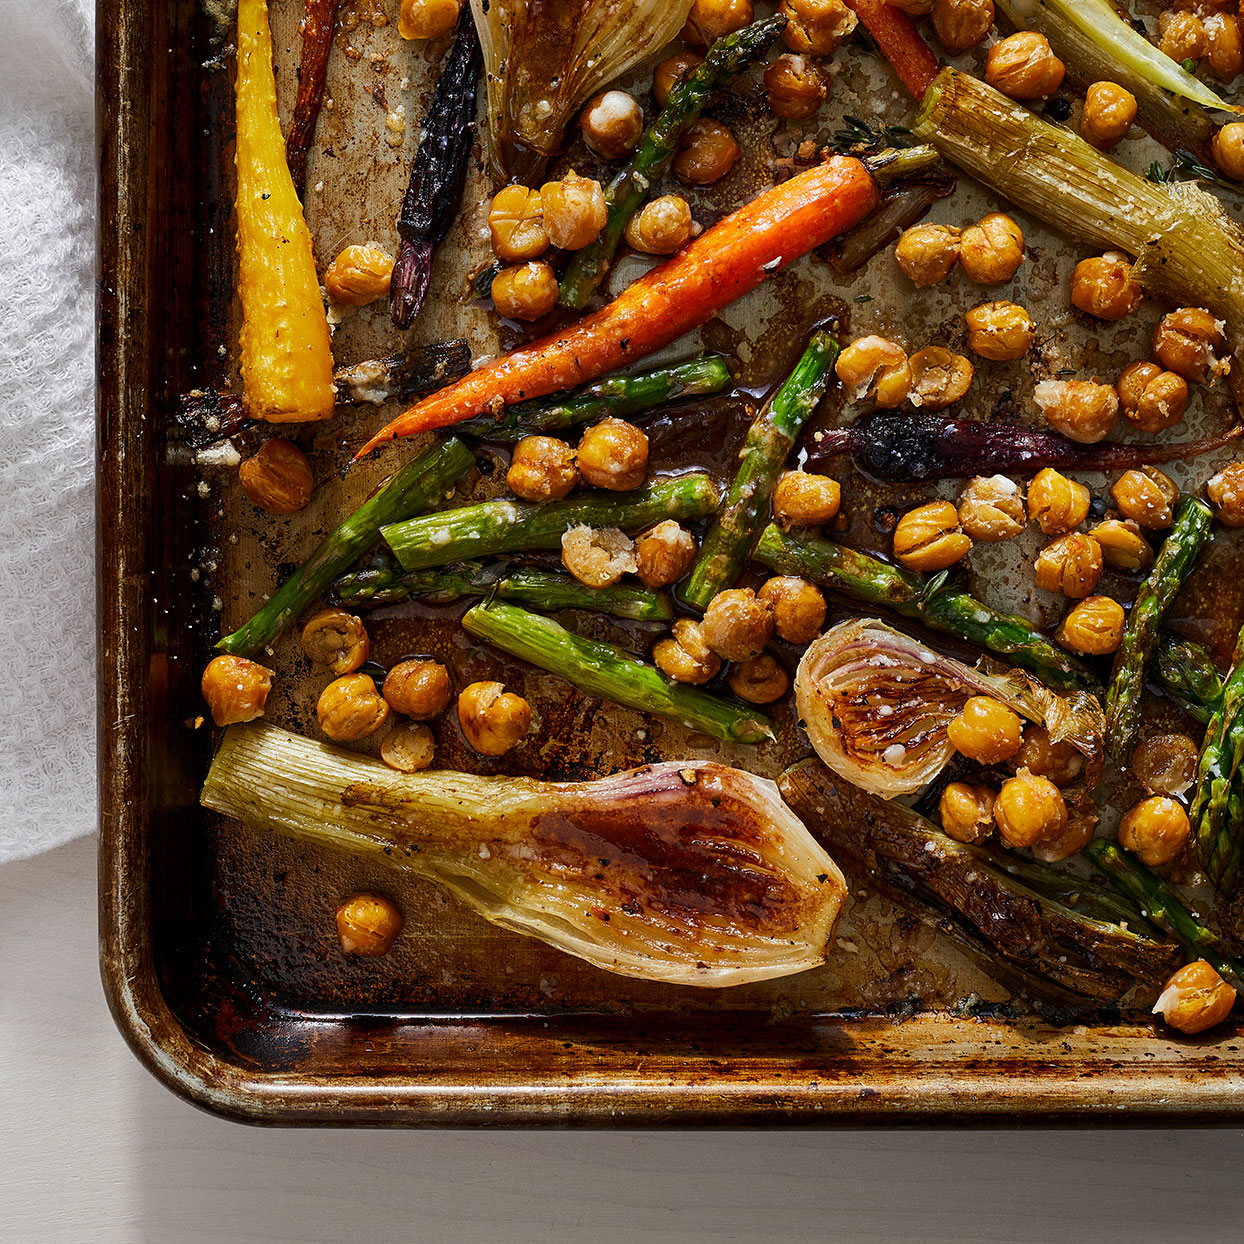 A tangy, balsamic dressing and nutty Parmesan cheese combine to coat tender roasted vegetables and chickpeas in this springy vegetarian dinner. To keep it vegetarian, serve it over quinoa or, for meat-eaters, serve with roasted chicken or pan-seared fish.